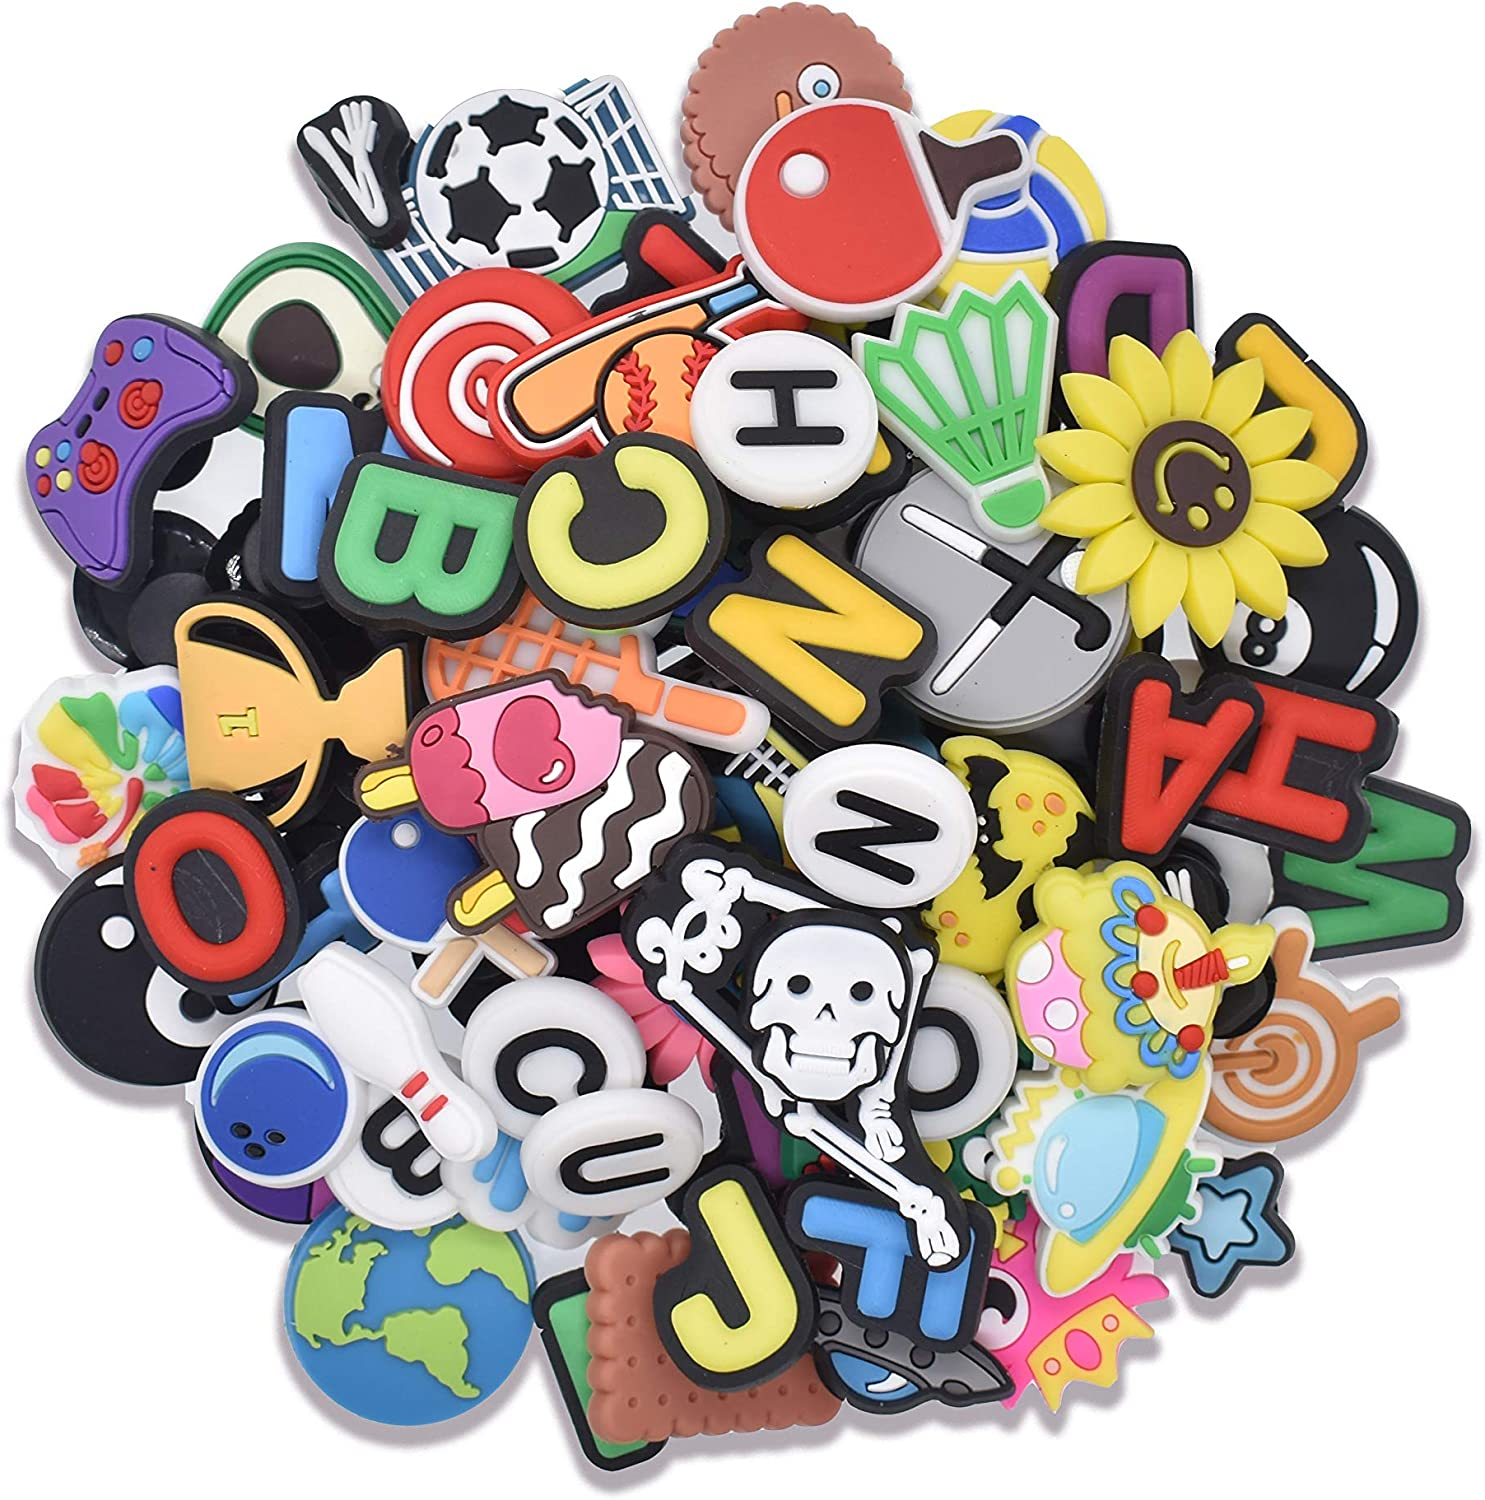 195,145,125,106,100,40 Cute Shoe Charms Shoe decoration for Bracelets Wristbands and Shoes Party Gifts